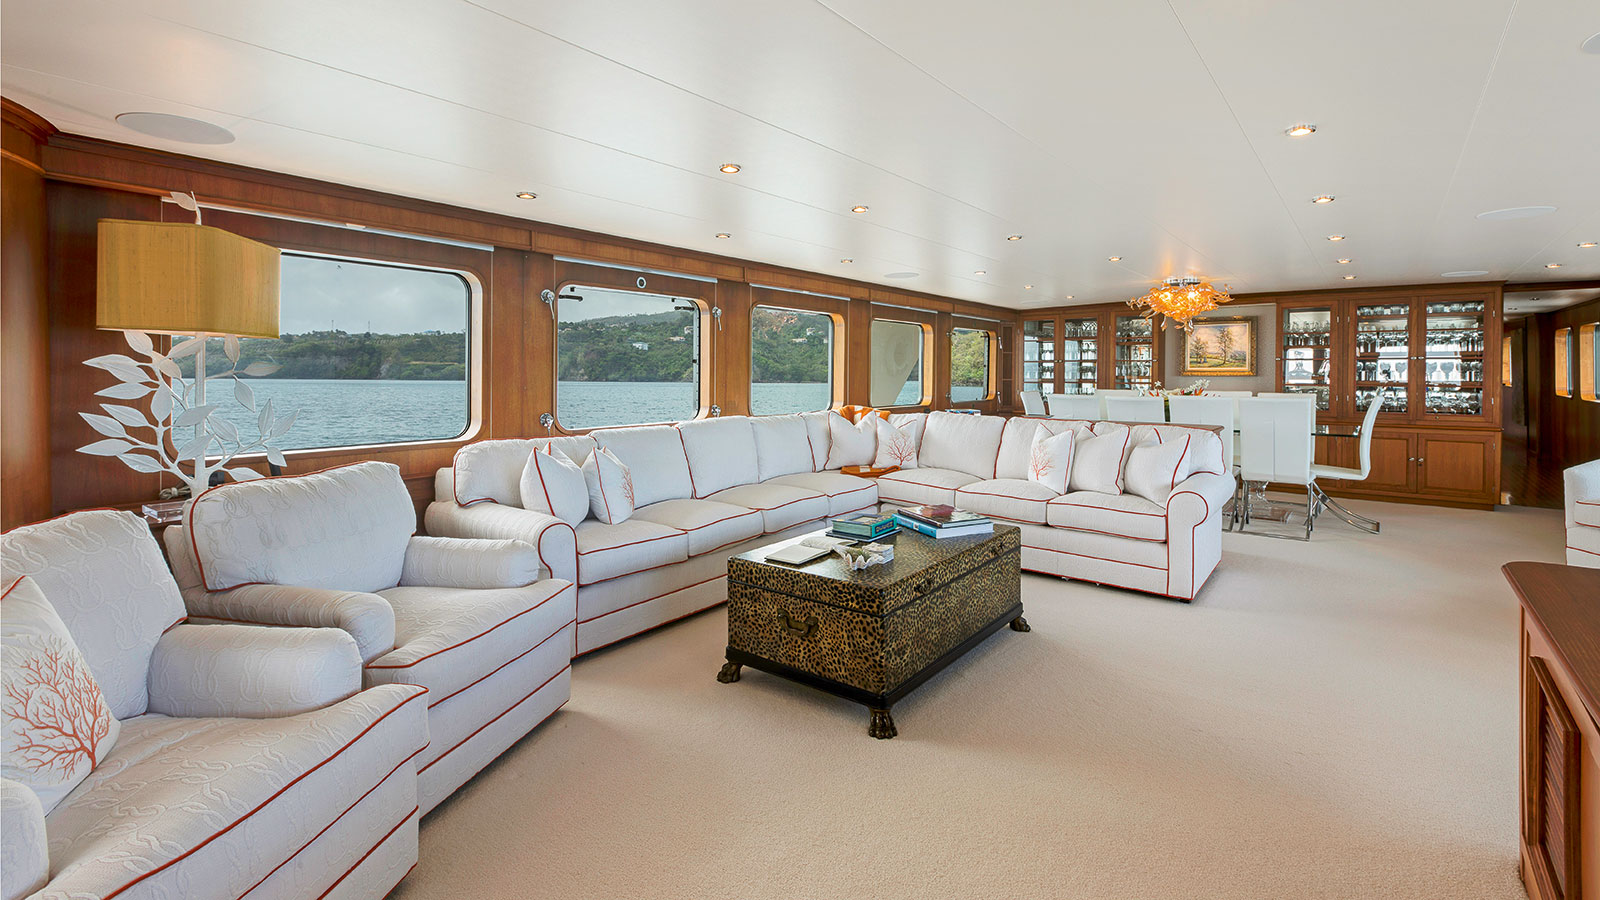 the-lounge-of-the-refitted-feadship-superyacht-berilda-credit-thierry-dehove